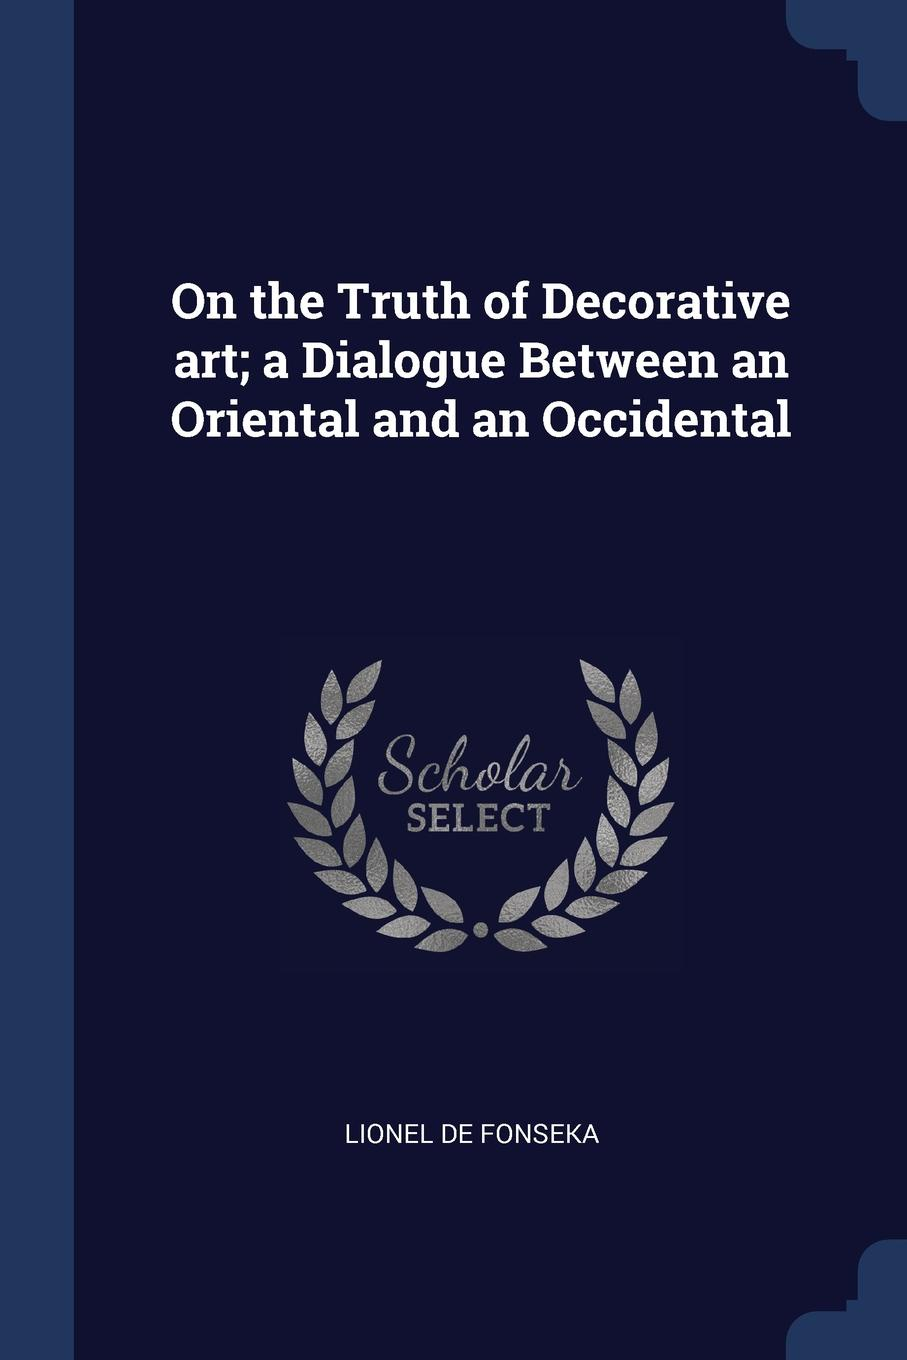 On the Truth of Decorative art; a Dialogue Between an Oriental and an Occidental. Lionel de Fonseka